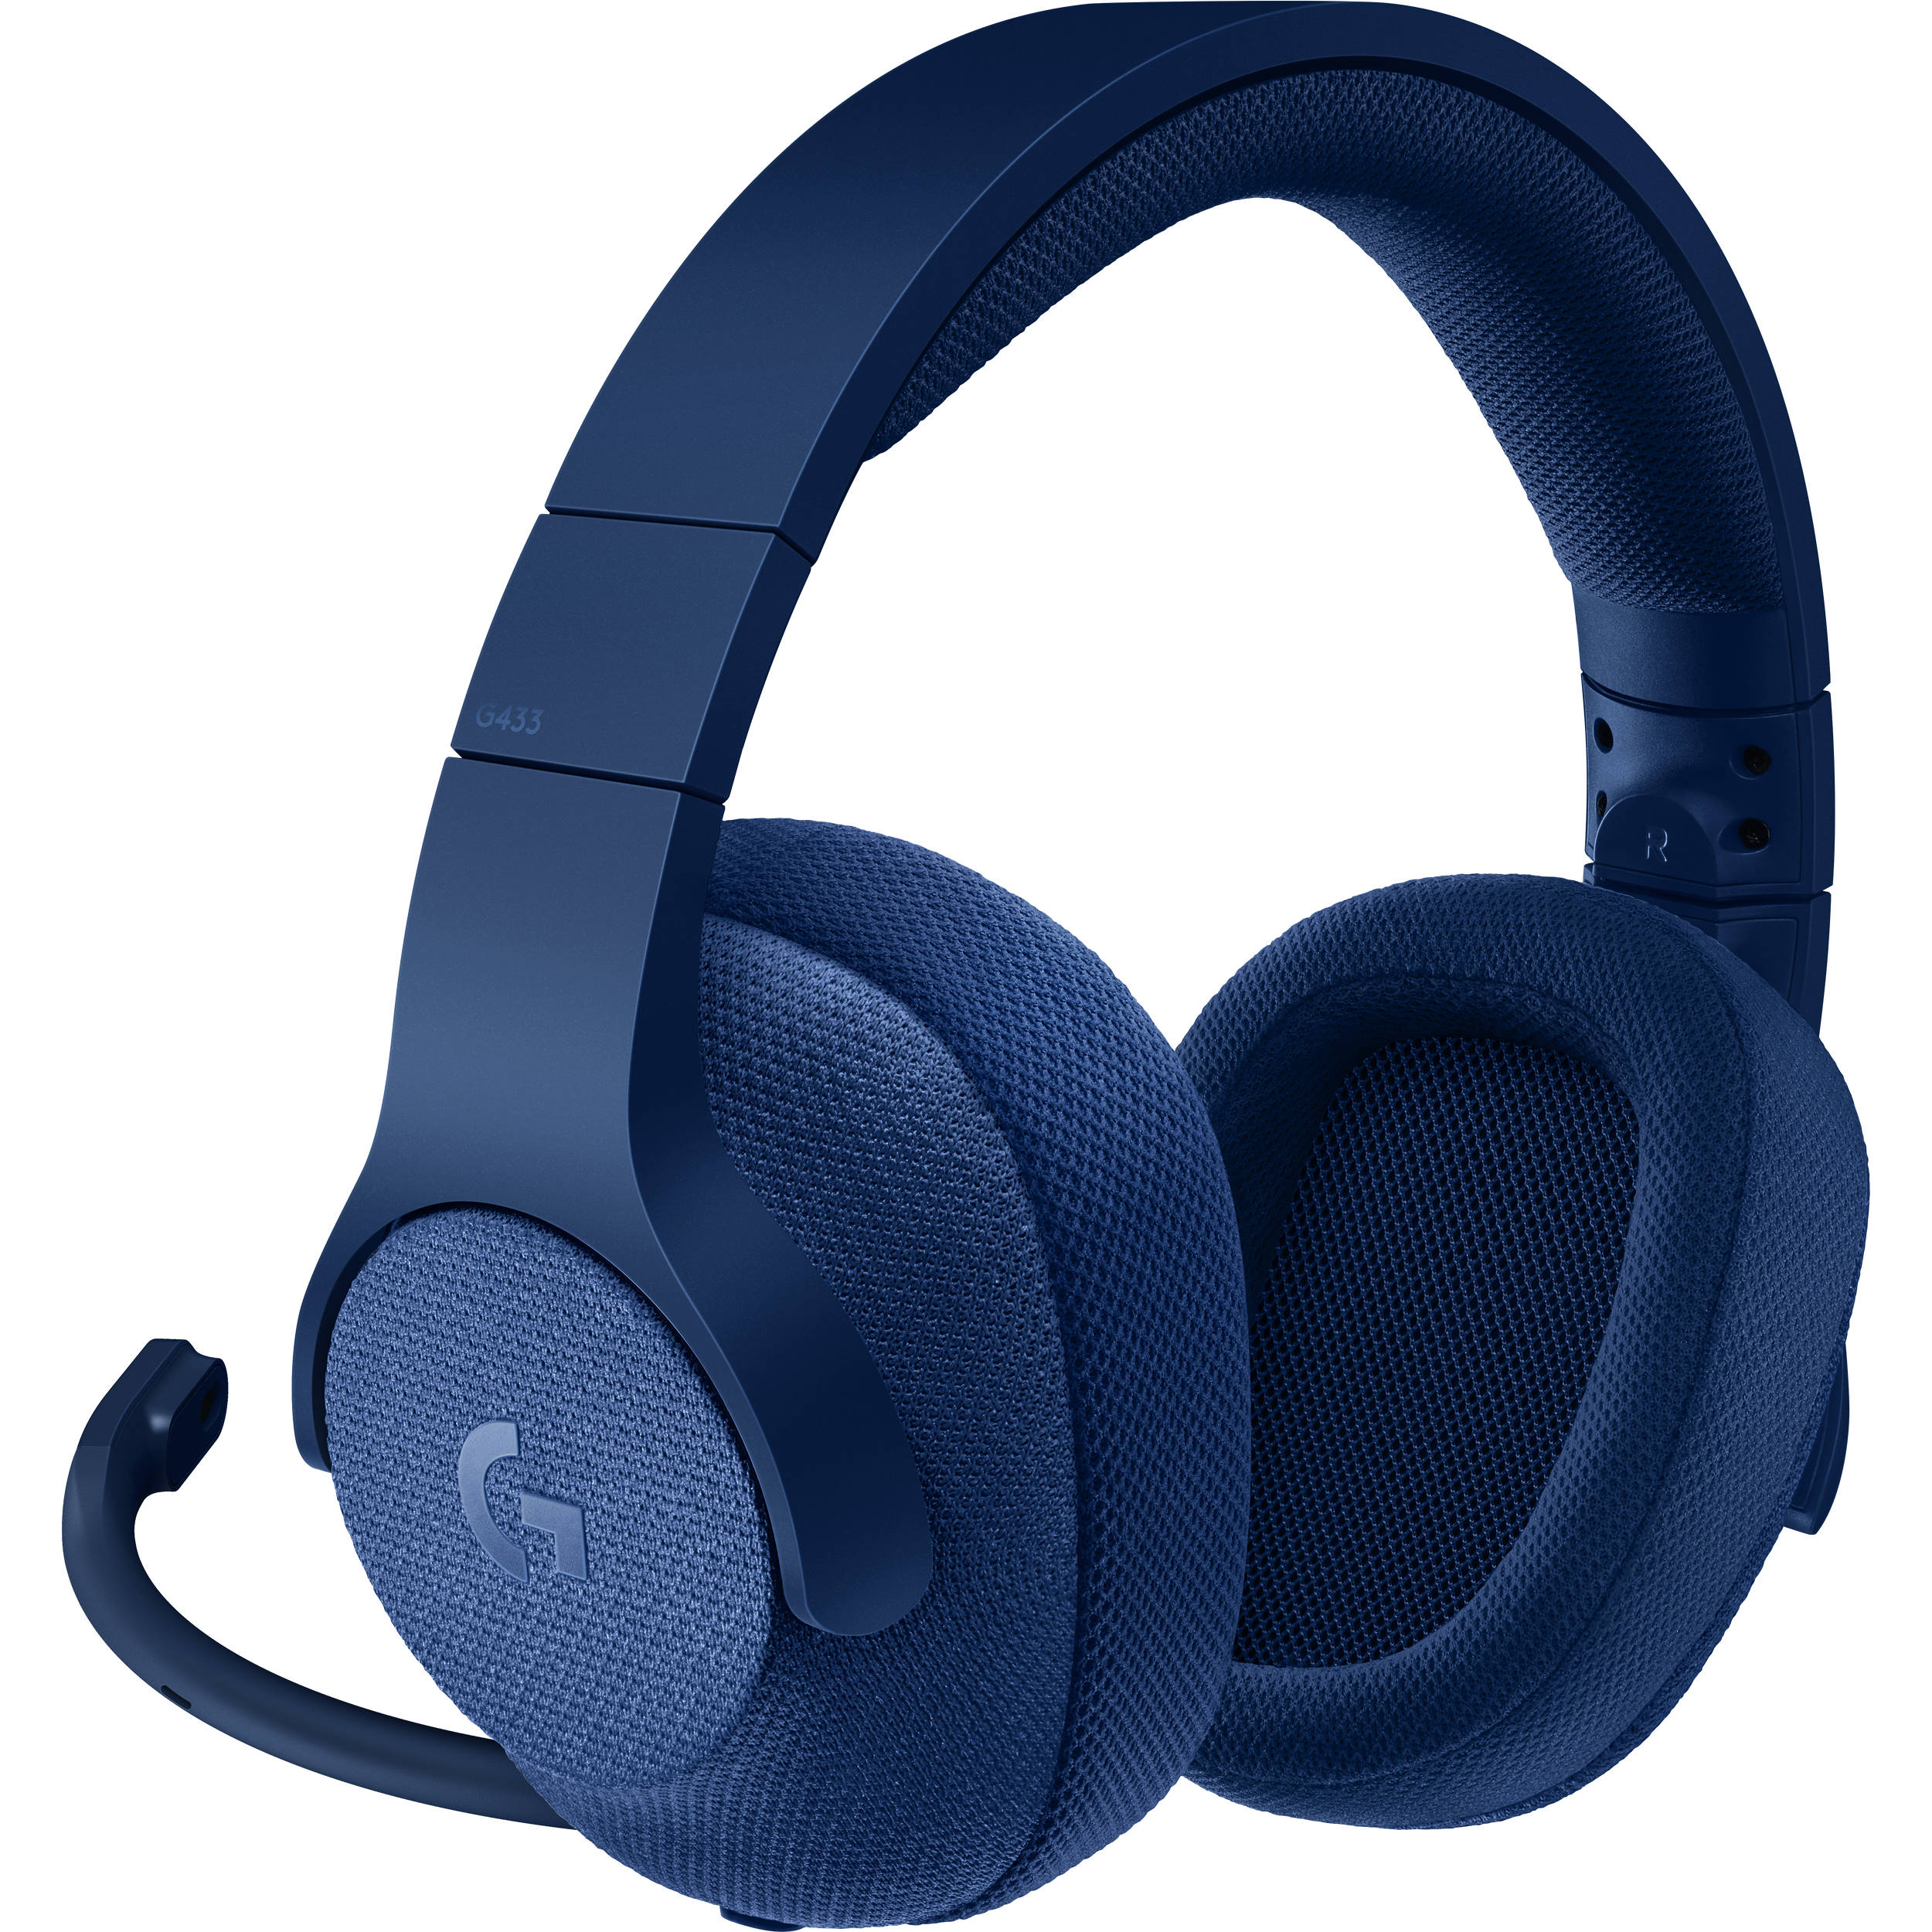 Logitech G433 7 1 Surround Wired Gaming Headset Blue